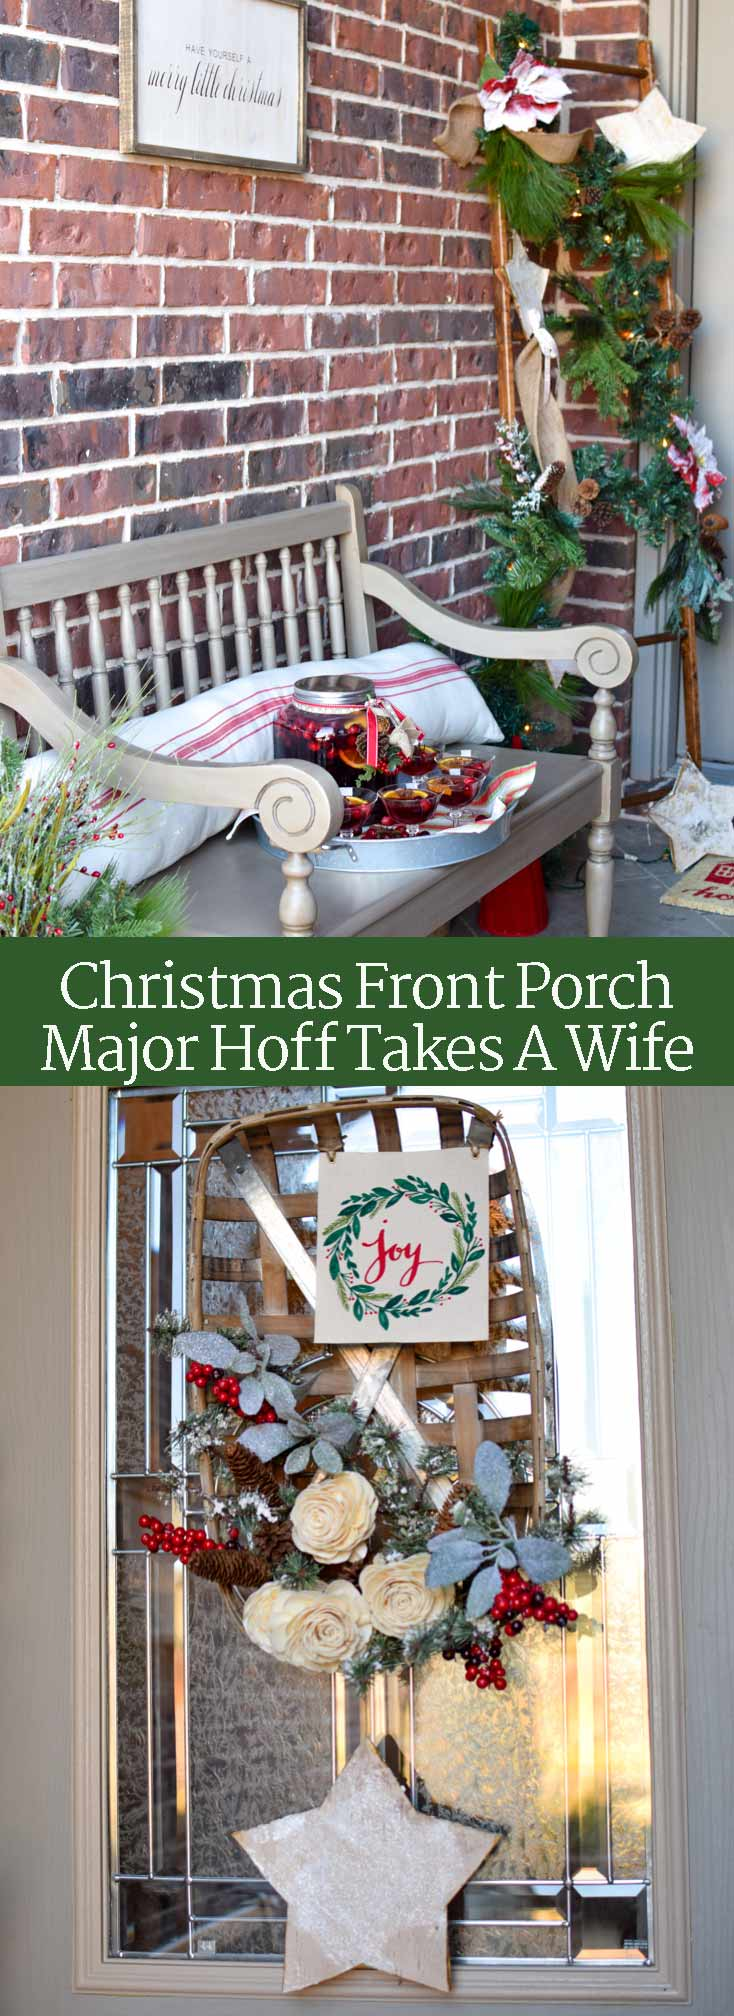 This Christmas porch is full of holiday cheer! Enjoy the farmhouse style decor and grab lots of ideas for a simple Christmas wreath, a ladder with lights and garland, a bench with an inviting drink, and lots of other DIY decorations. Be sure to check out all the details! #Christmas #Christmasdecor #Christmascrafts via @mrsmajorhoff